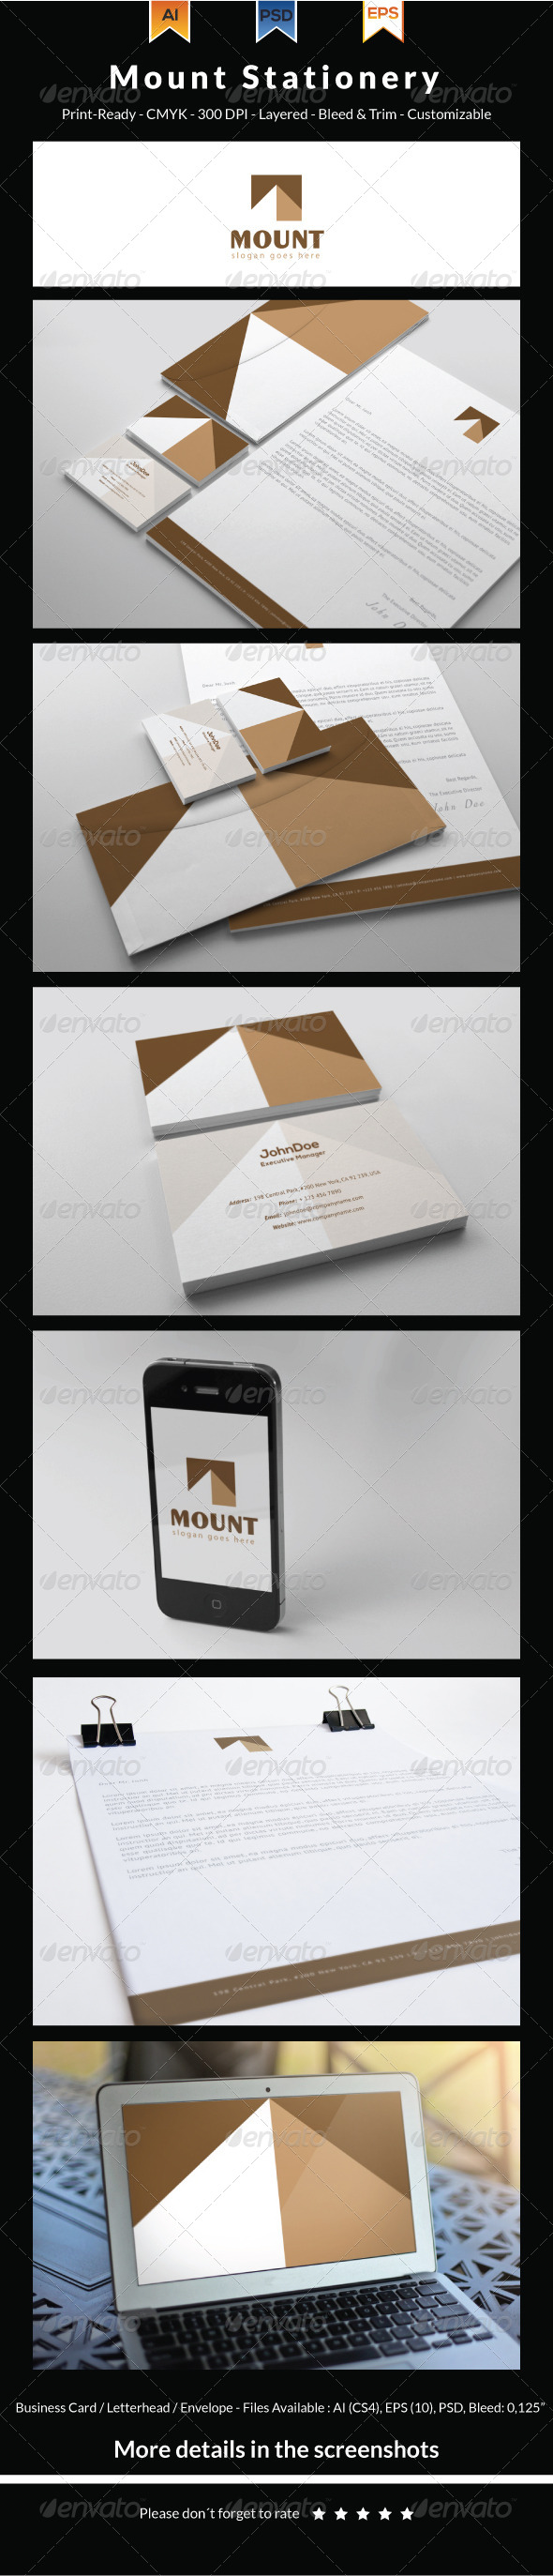 Mount Stationery